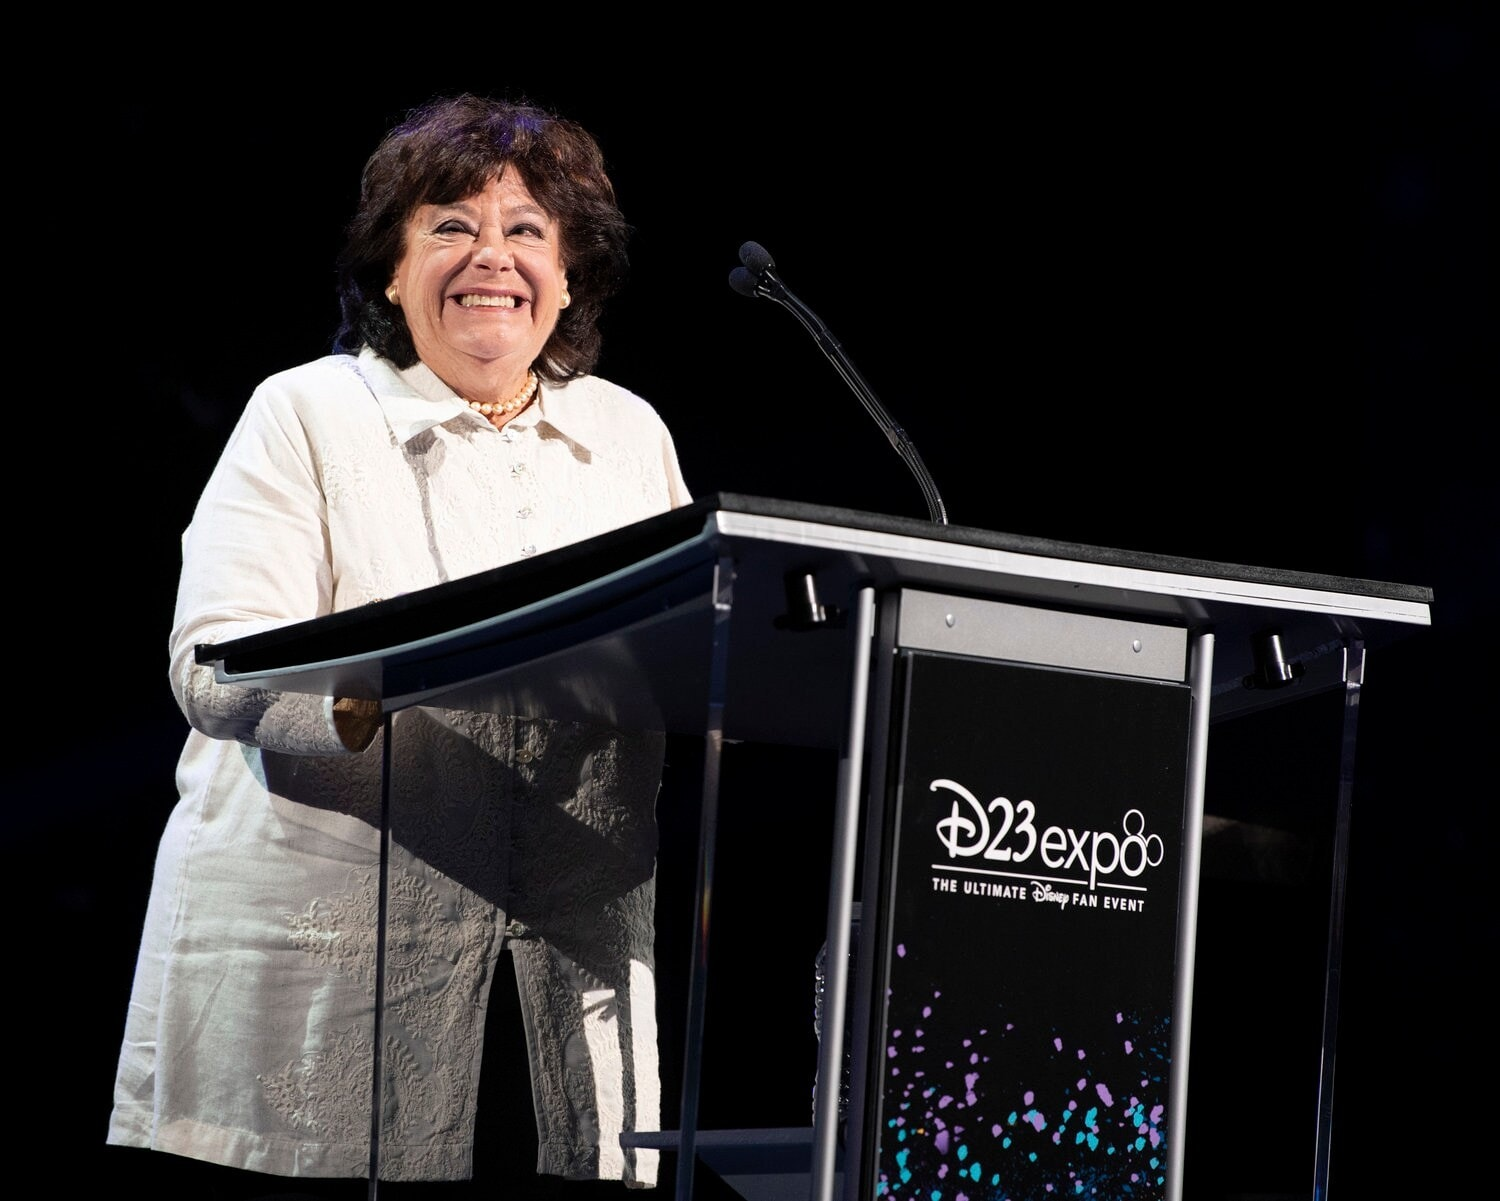 Barnette Ricci at Disney Legends Awards Podium